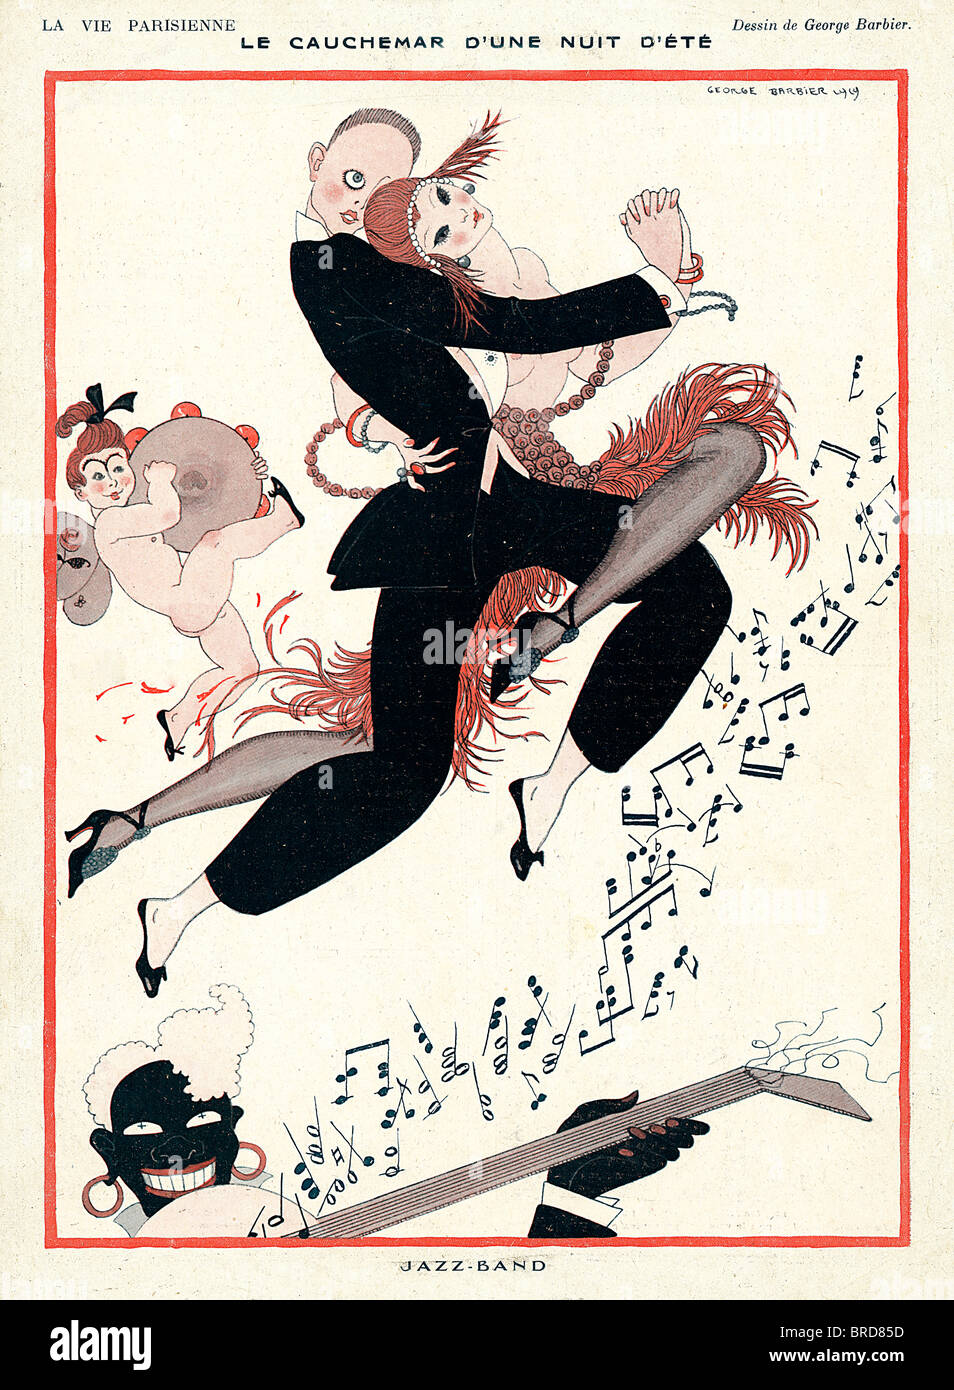 Jazz Band, 1929 French magazine illustration, Le cauchemar dune nuit ete, the Incubus of a Summer night - Stock Image